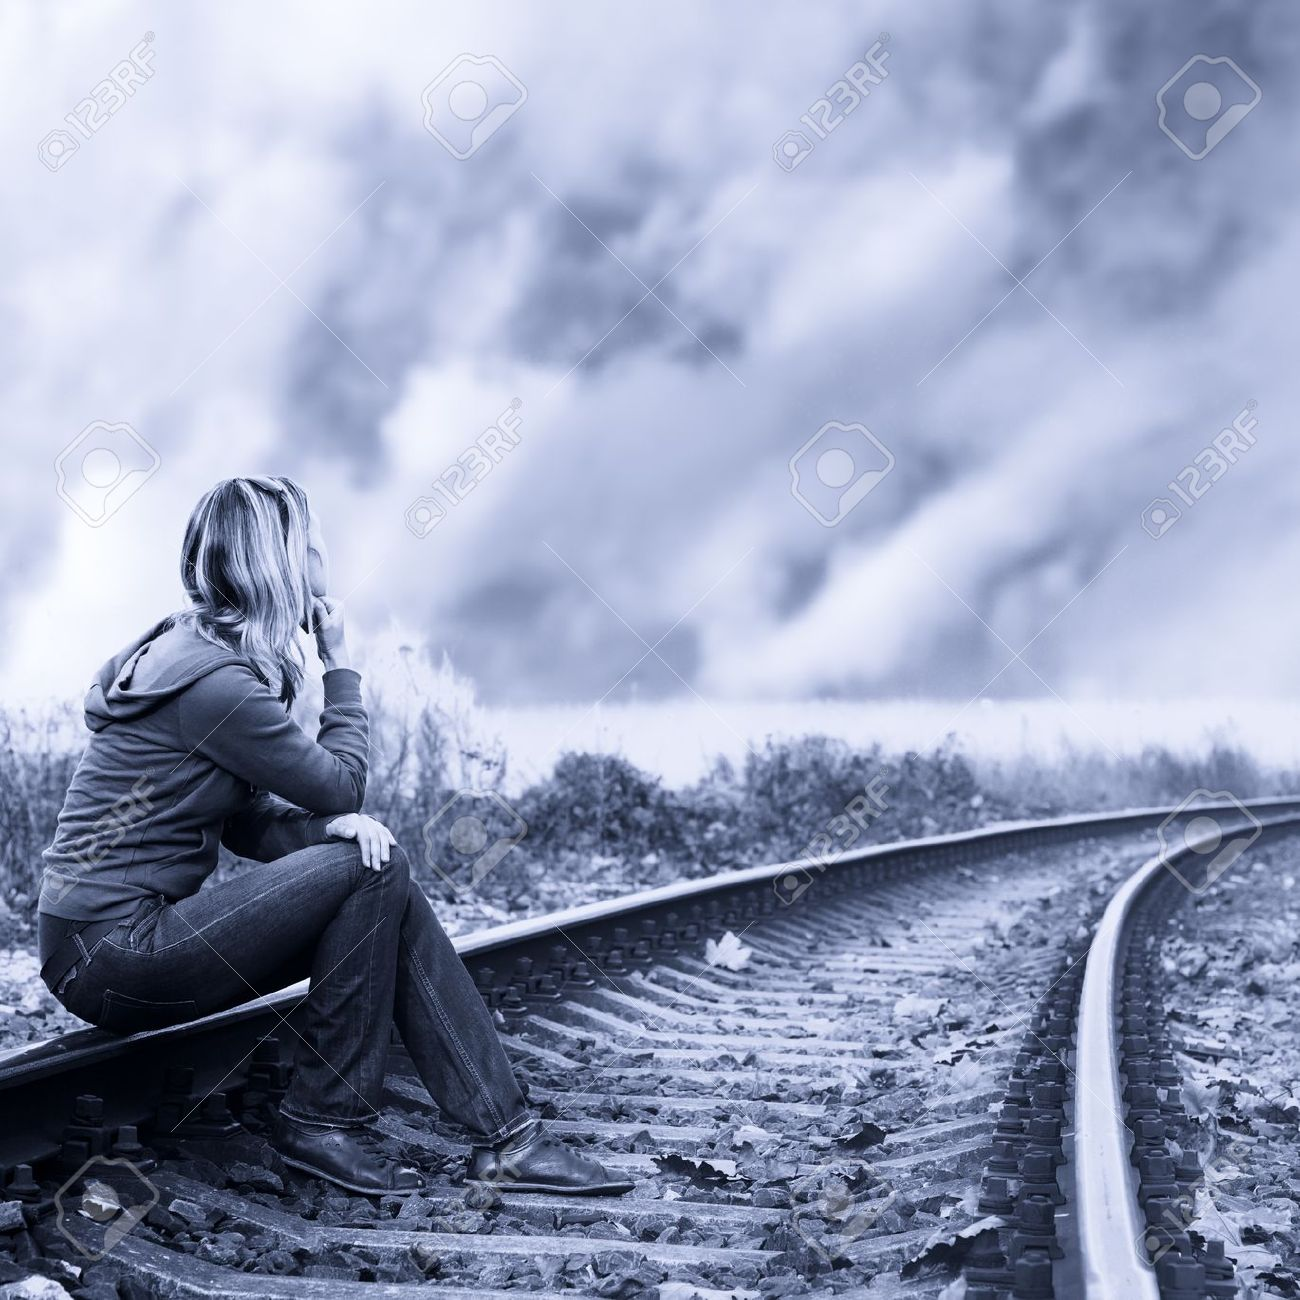 Lonely woman sitting on the rails and thinking Stock Photo - 13546273